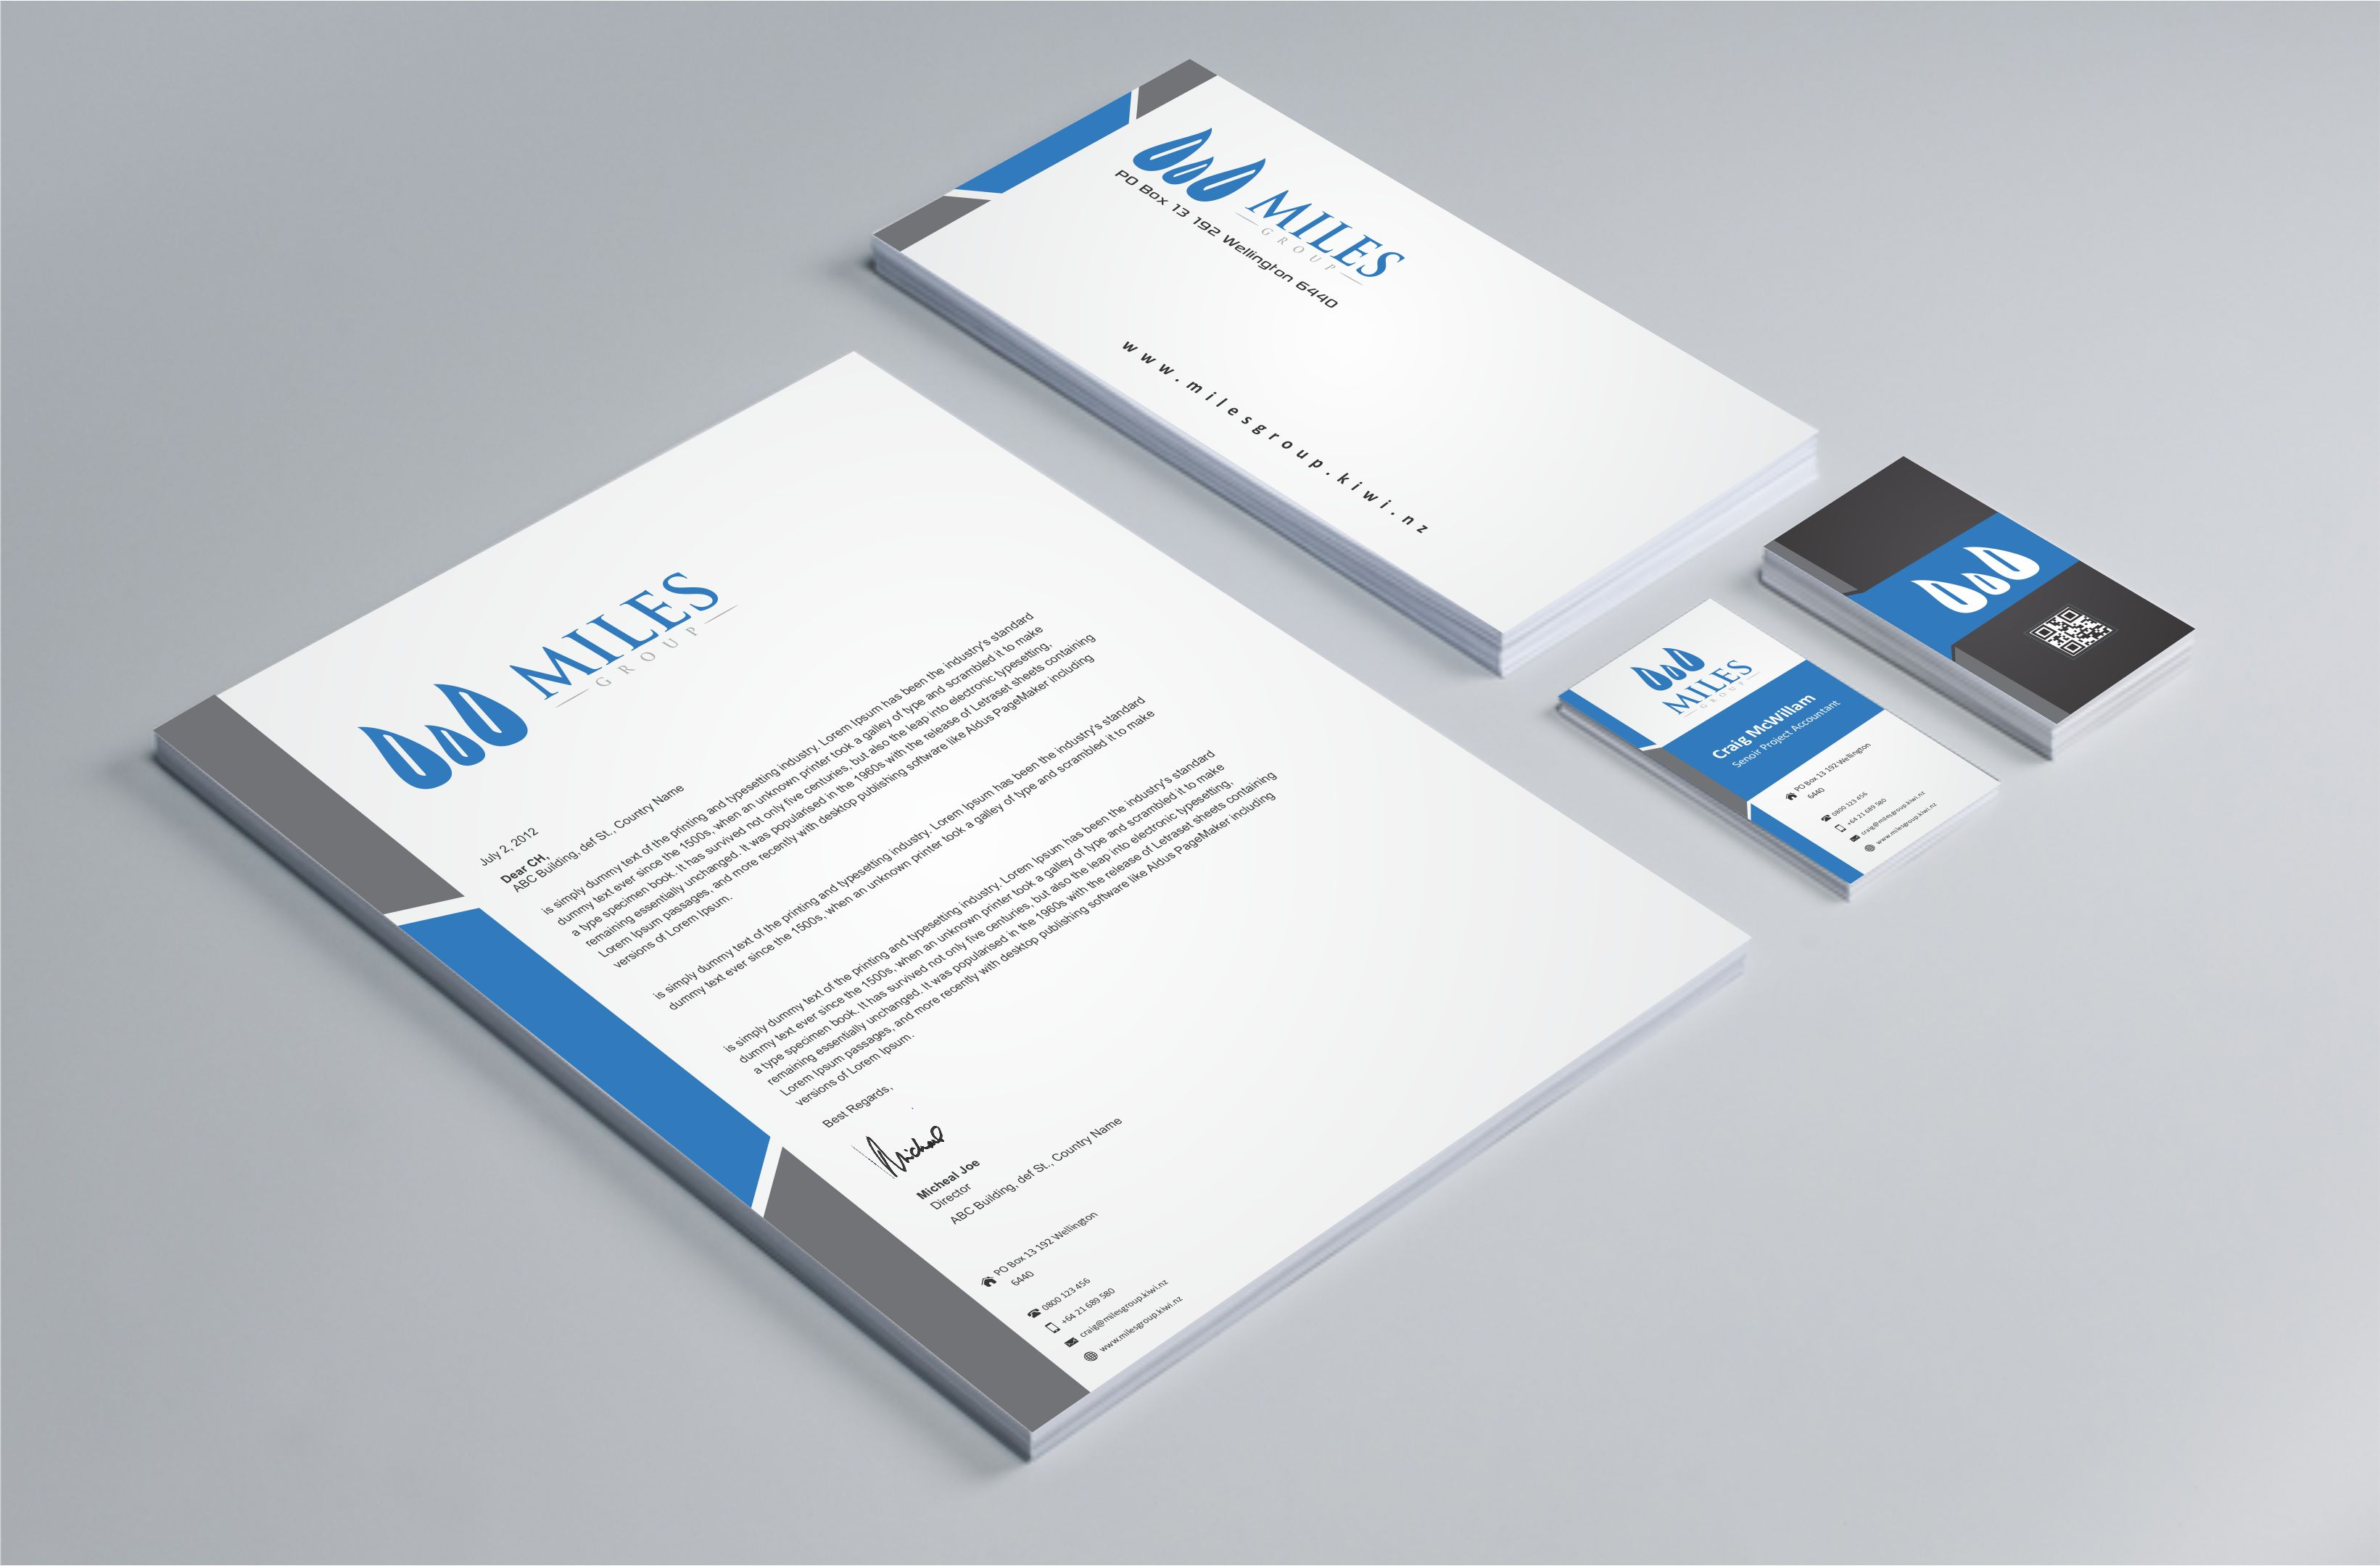 Chartered accountants & business advisors company seeks logo & business card design refresh - Financial Services